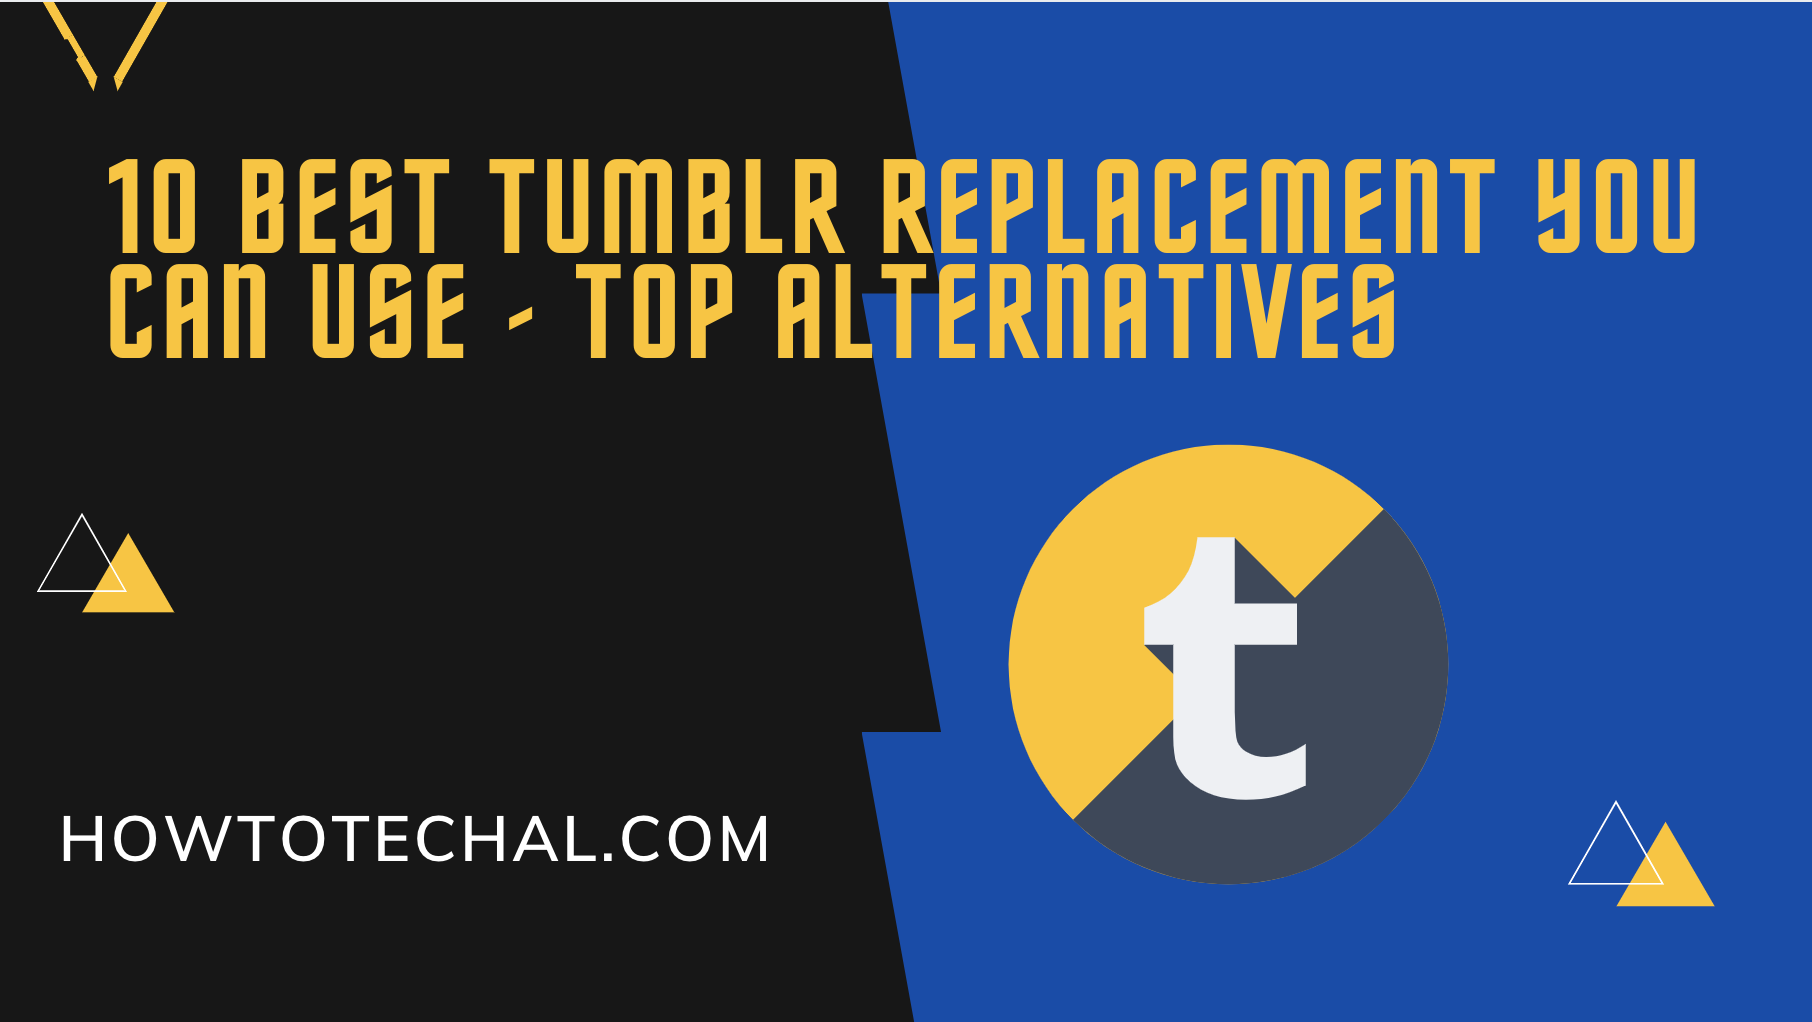 10 Best Tumblr Replacement You Can Use – Top Alternatives